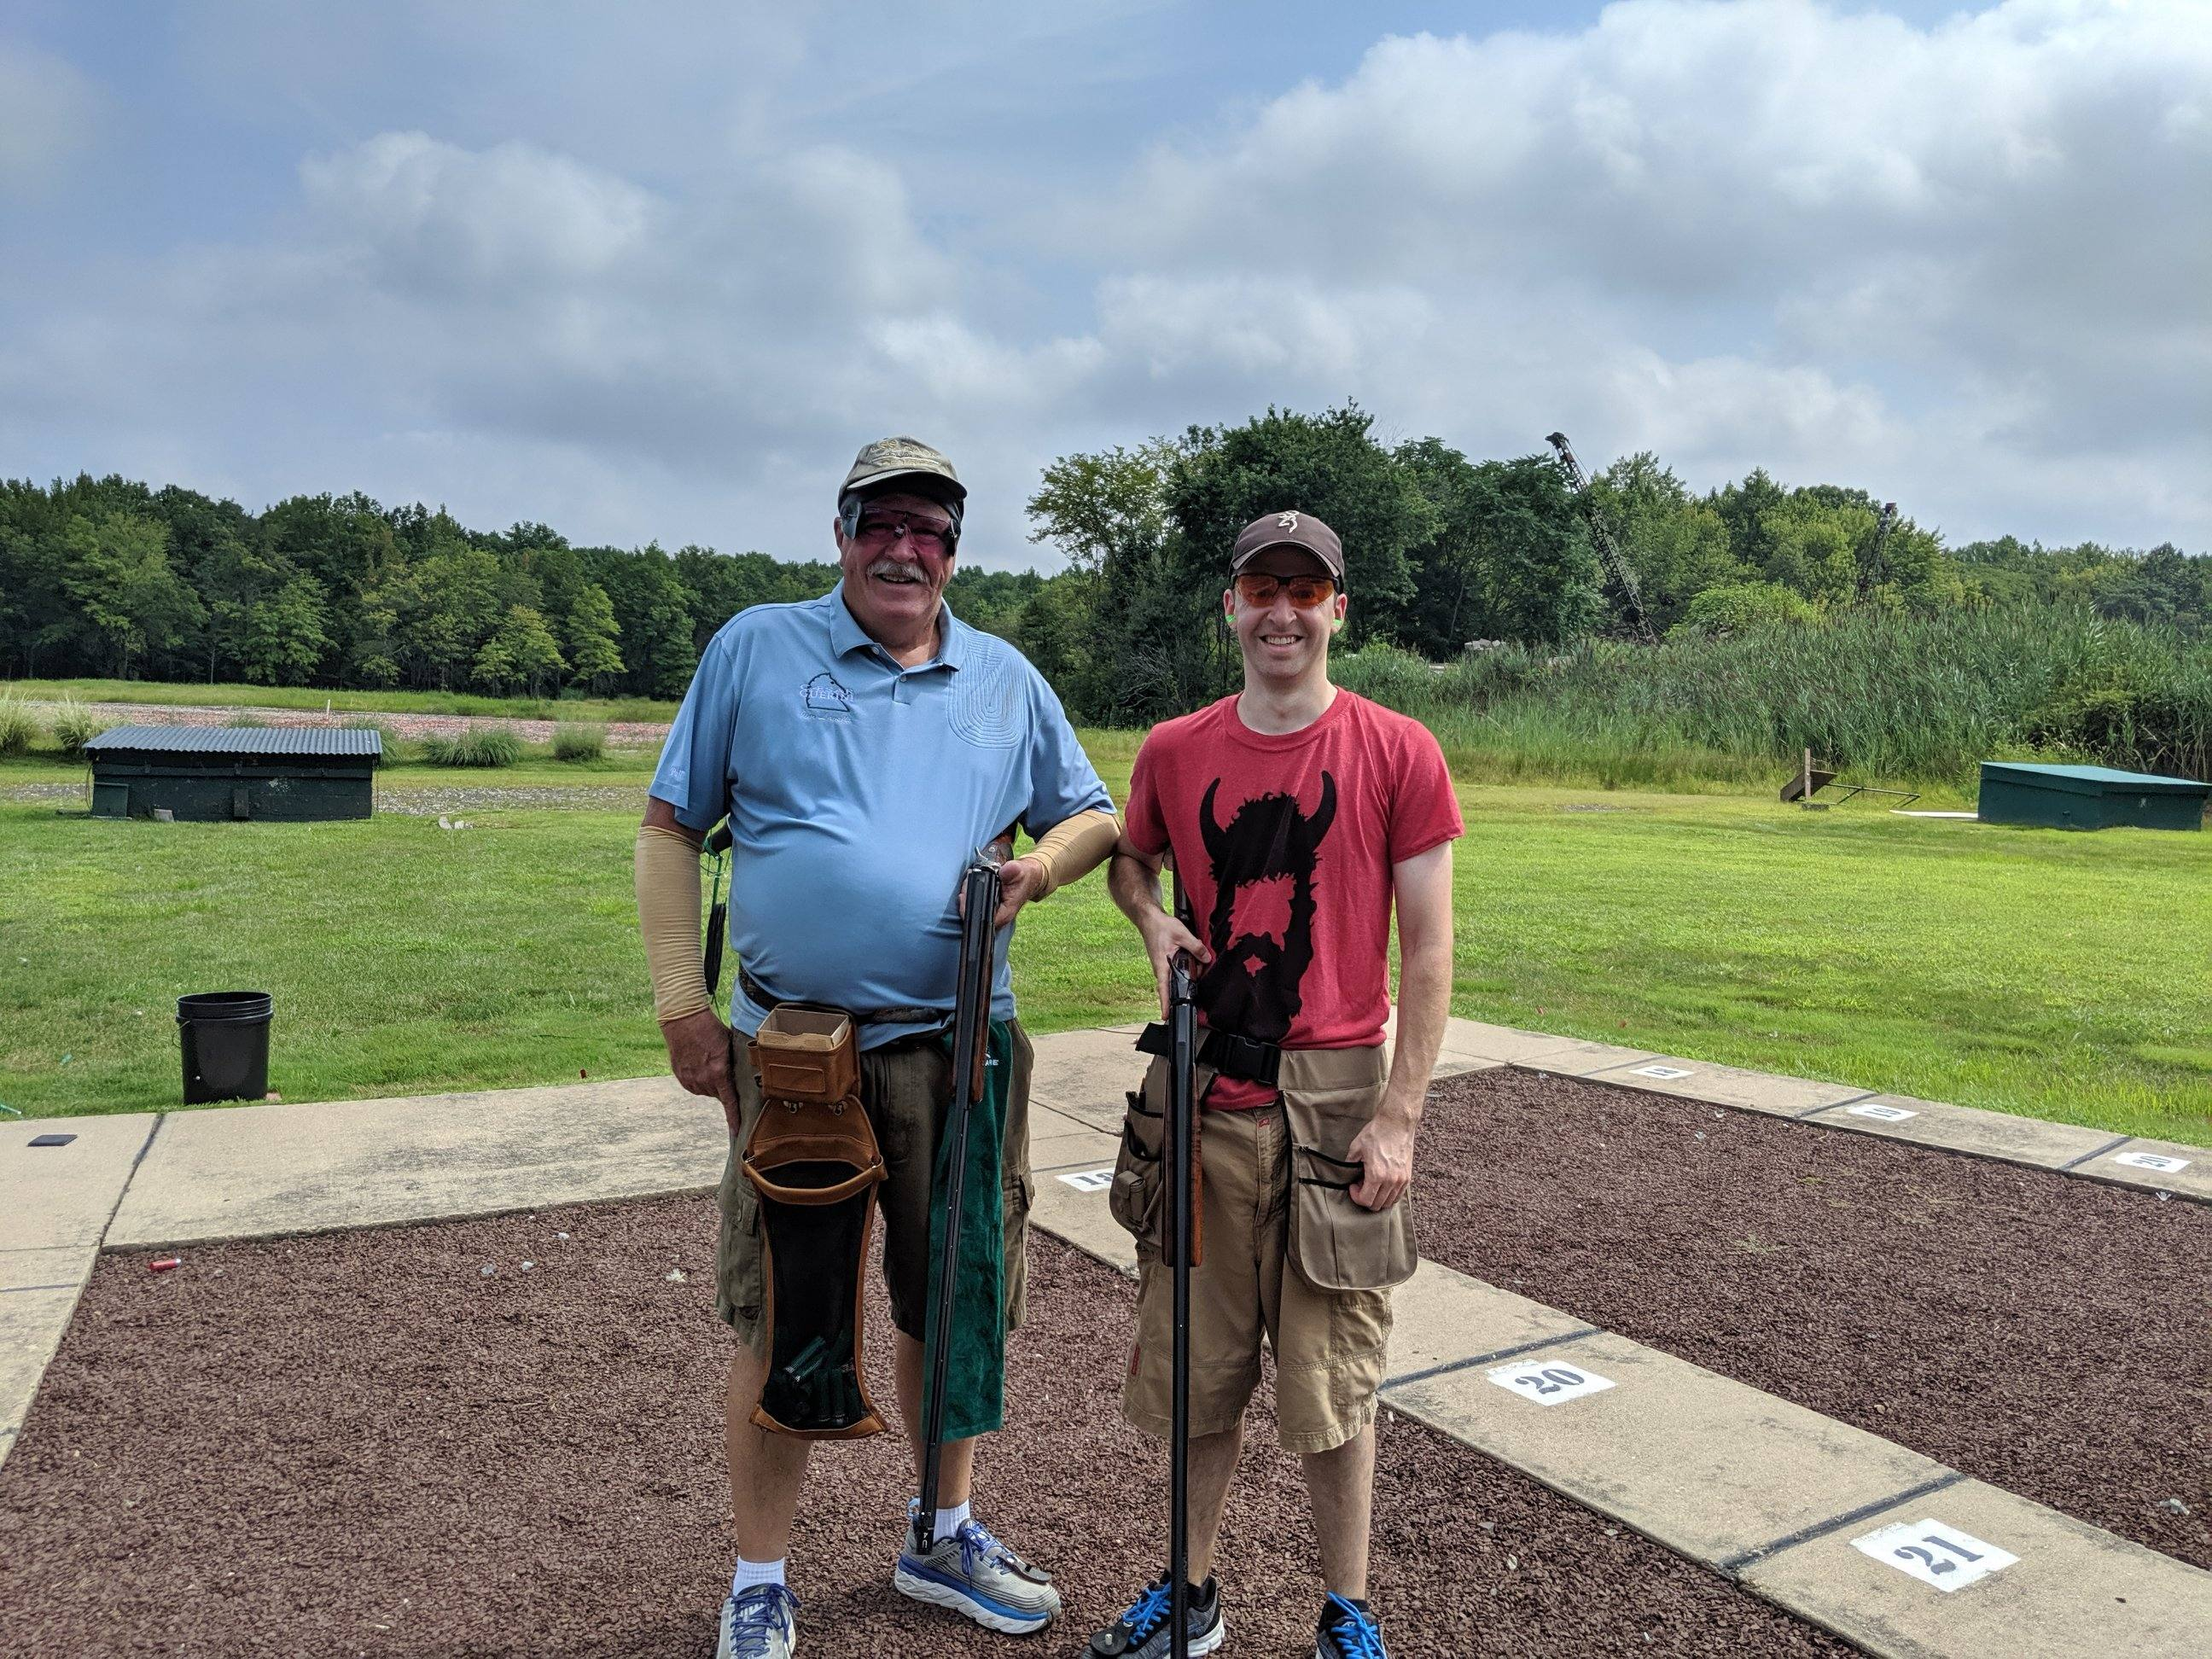 During North Jersey CTC's Aug. 18 memorial shoot, Jim Lavelle, who was shooting with his son Mike, fired at his 10,000th ATA bird of the 2019 target year. It was Jim's goal to reach the 10,000 mark and have his name listed in the state shoot program. Jim posted a 98 in singles, his personal best, and followed it up with a 96. The latter score tied him for the high-gun prize, which he won by forfeit.